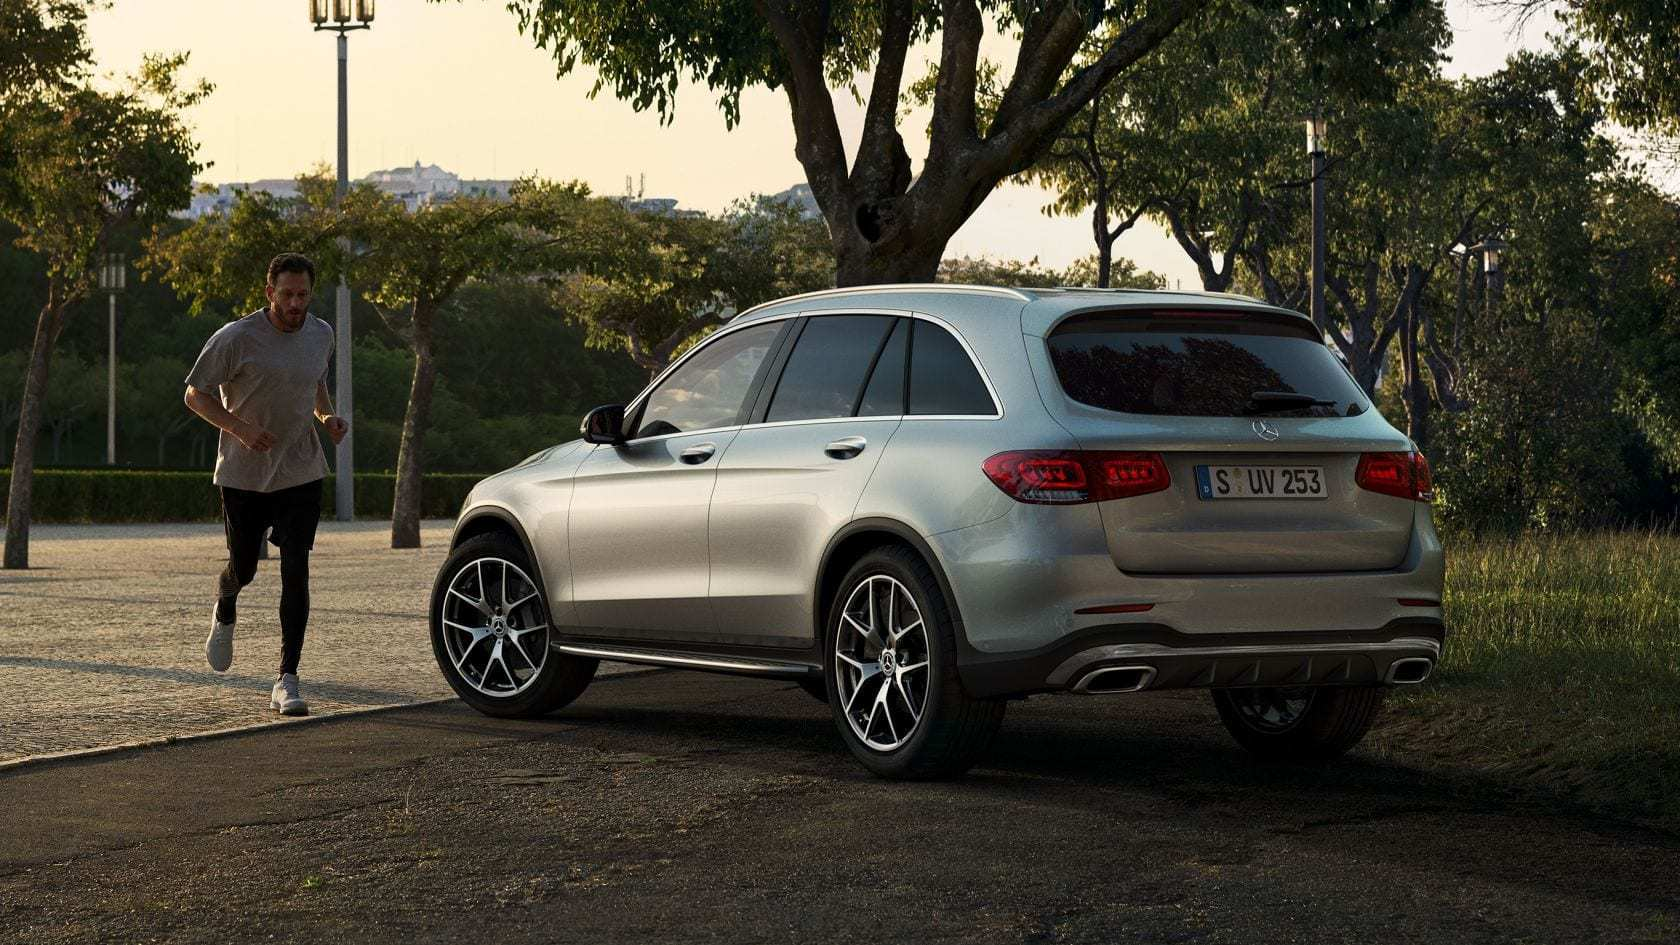 75 New Mercedes Glc Exterior And Interior